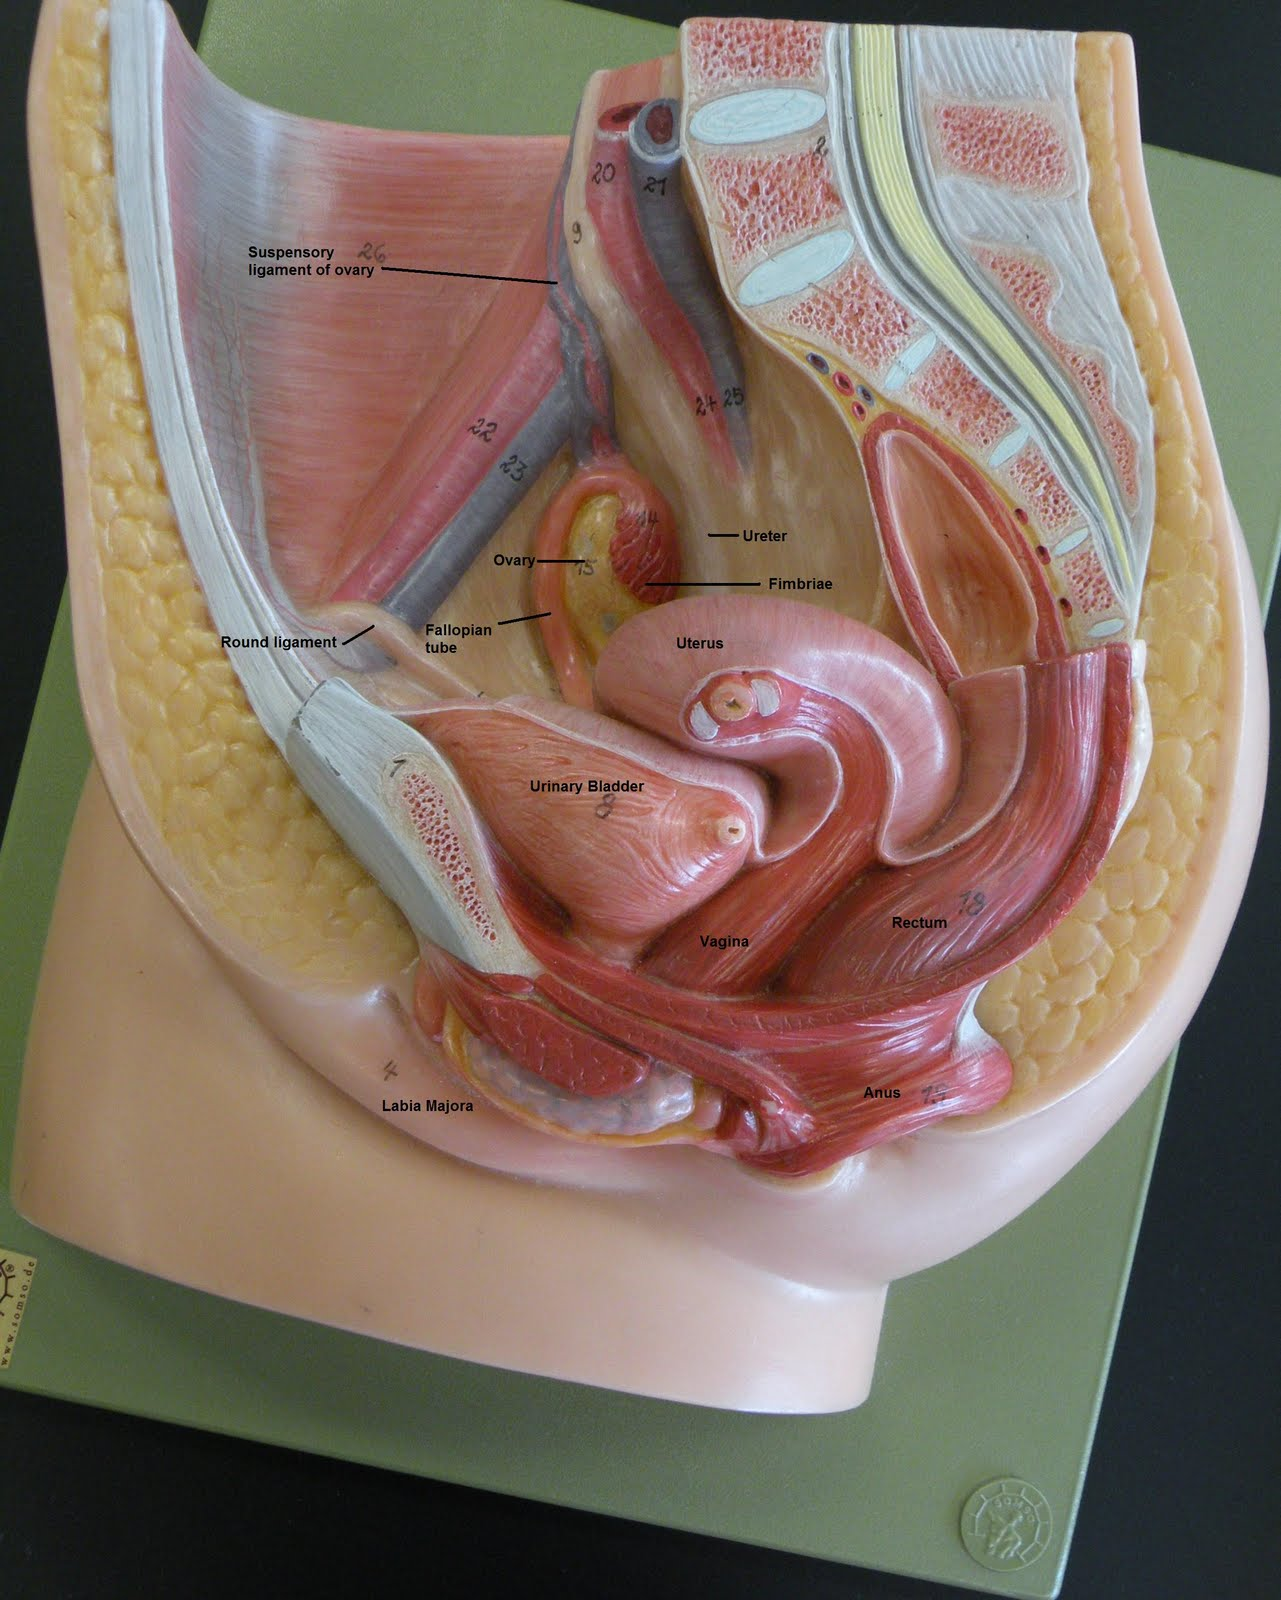 Posted by Rebecca Kimble at 8 21 AMFemale Reproductive System Model